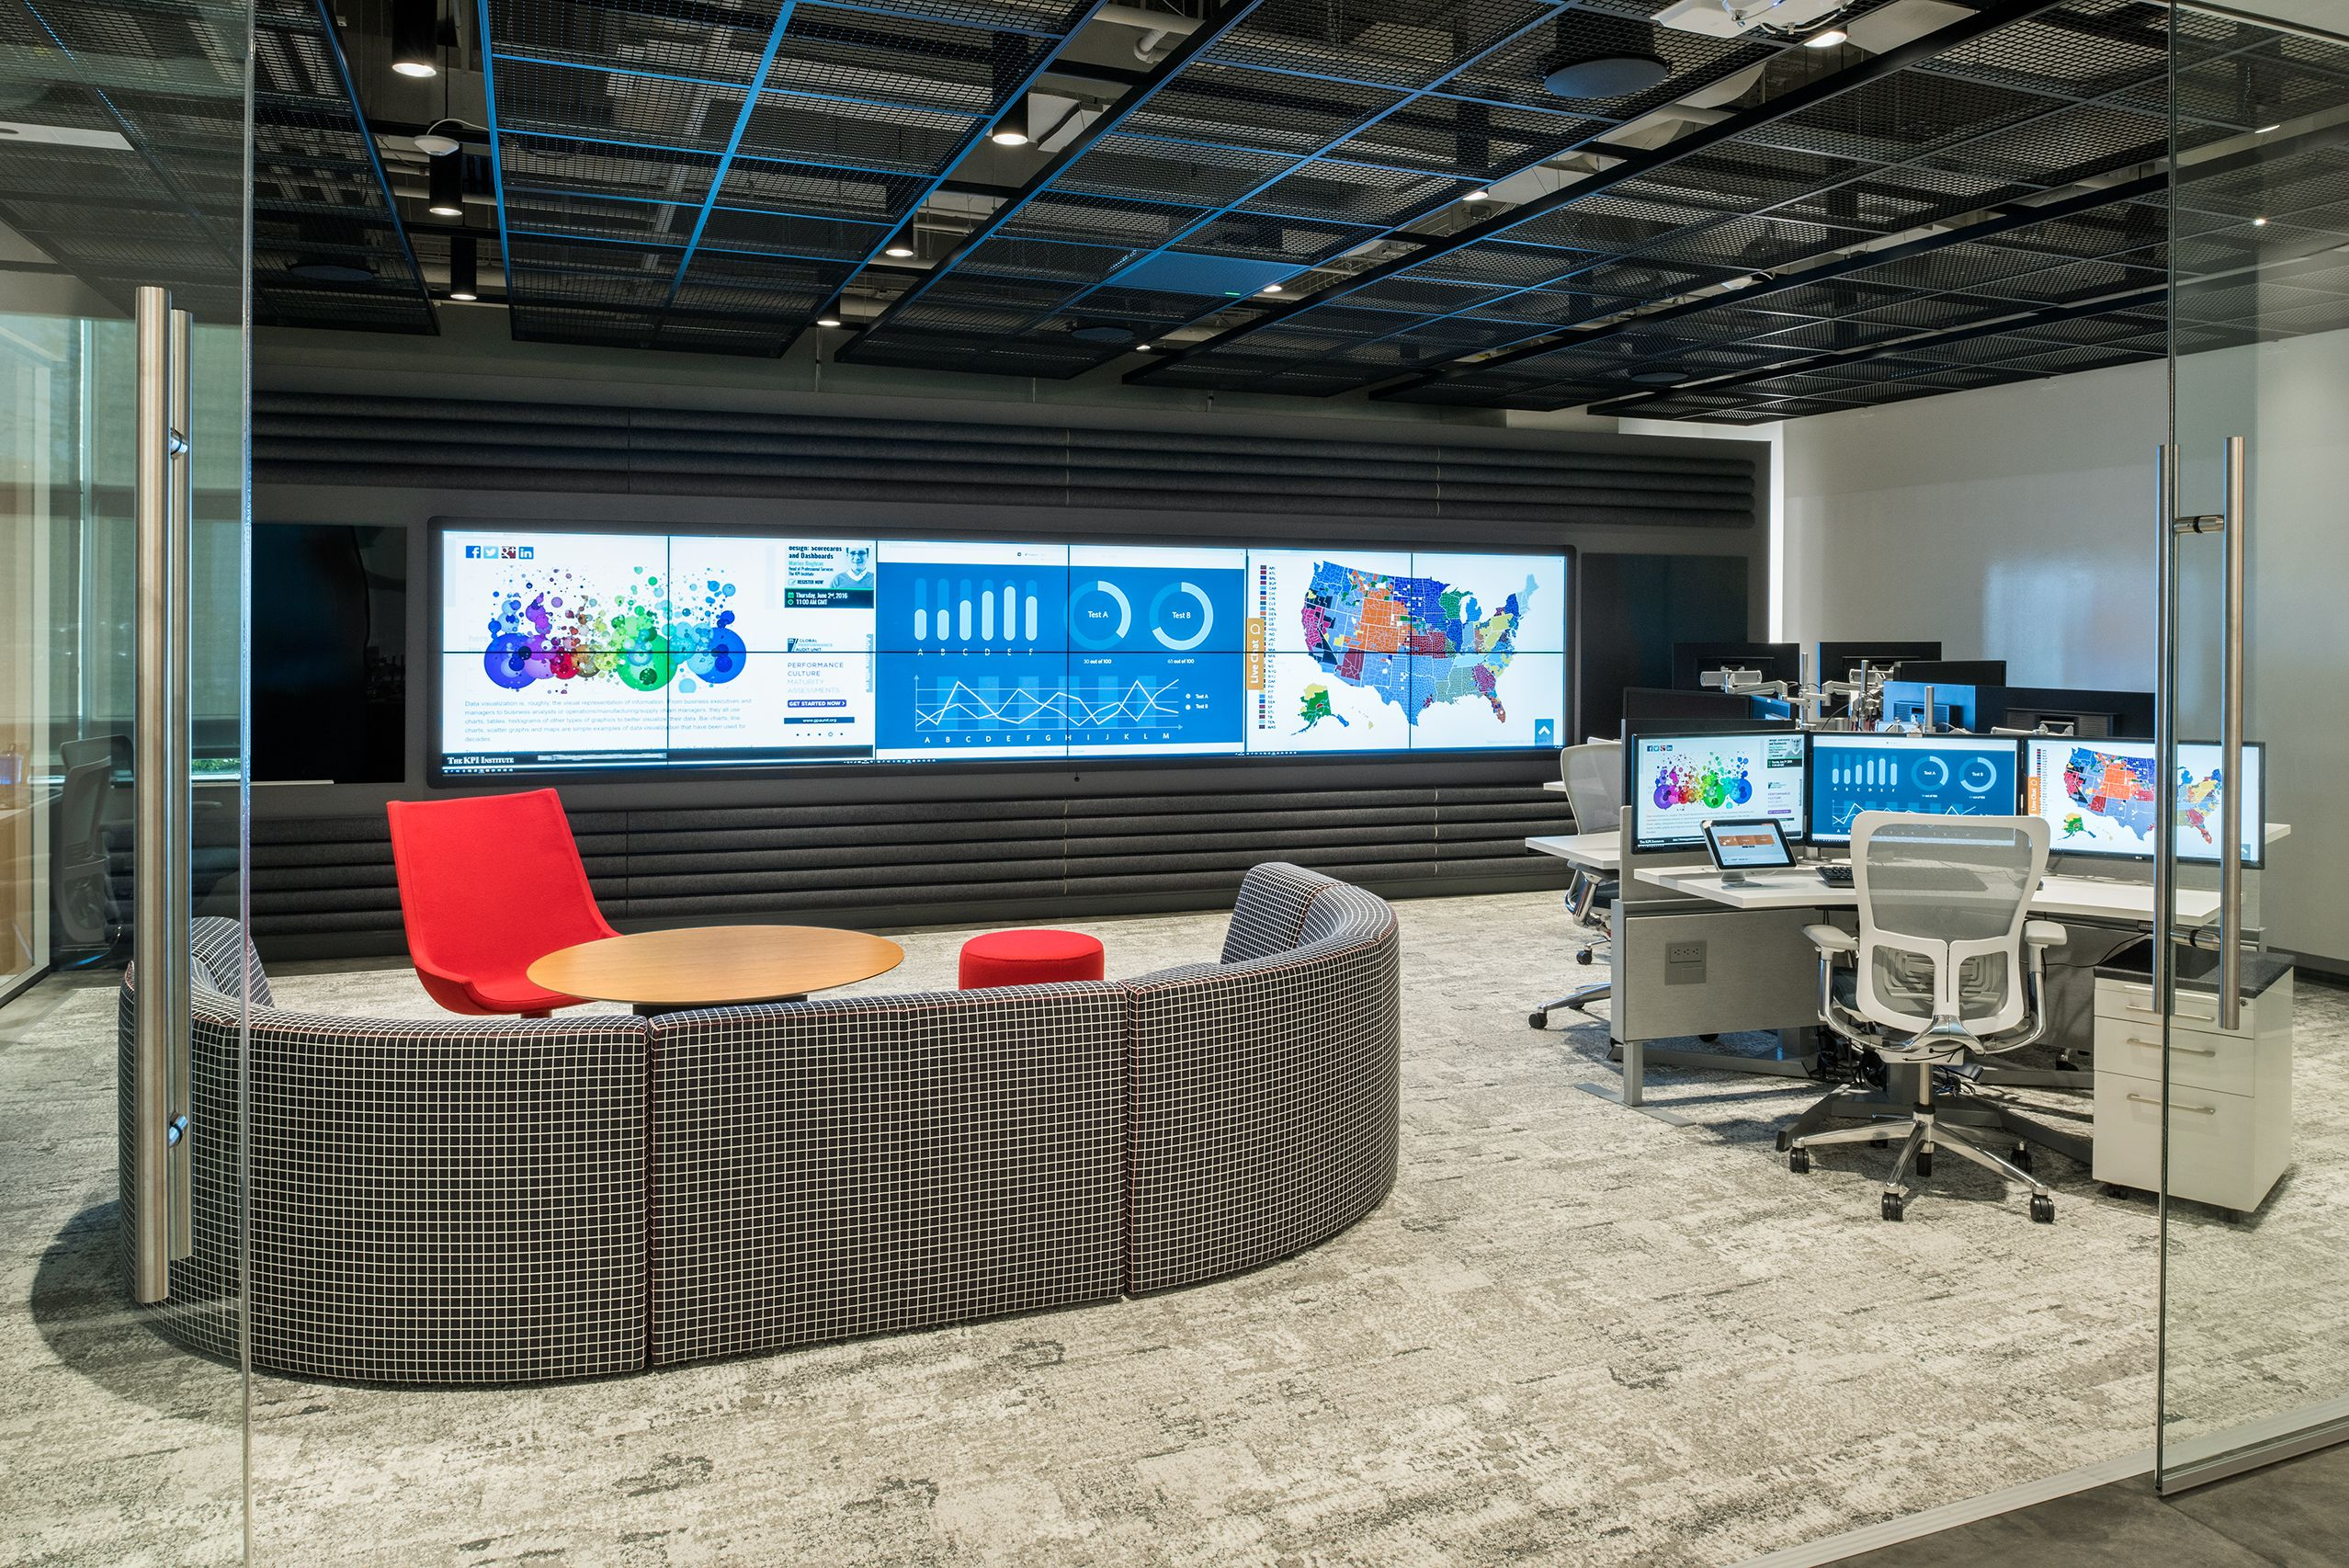 Showpiece Video Wall Integration And Command Center Furniture Gallery Security Room Video Wall Home Decor